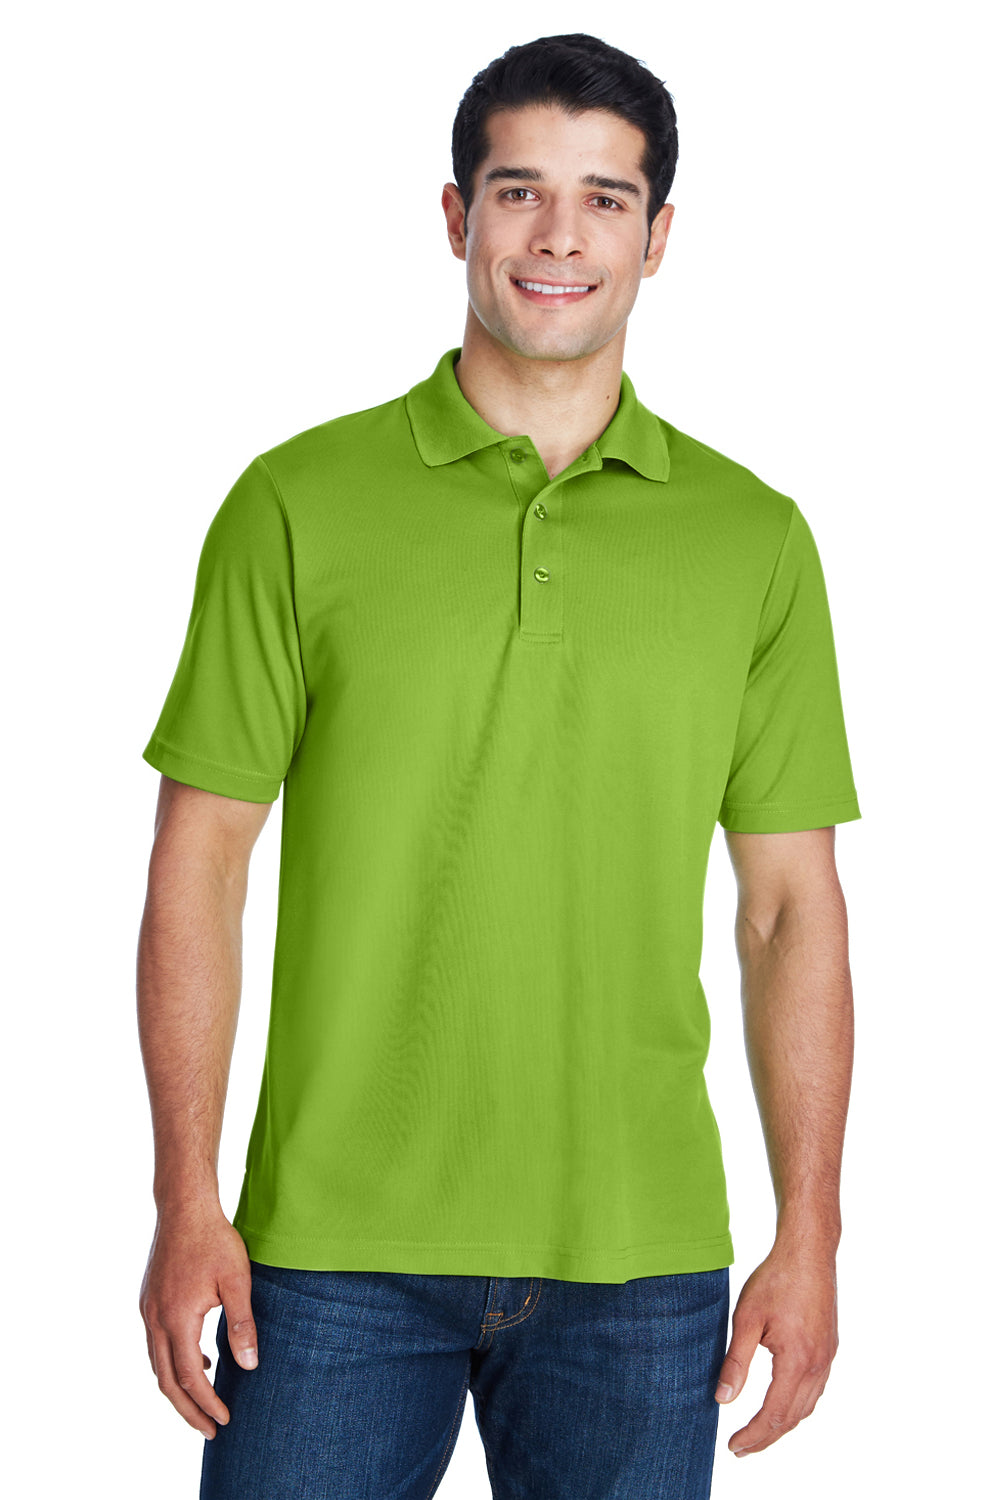 Core 365 88181 Mens Origin Performance Moisture Wicking Short Sleeve Polo Shirt Acid Green Front